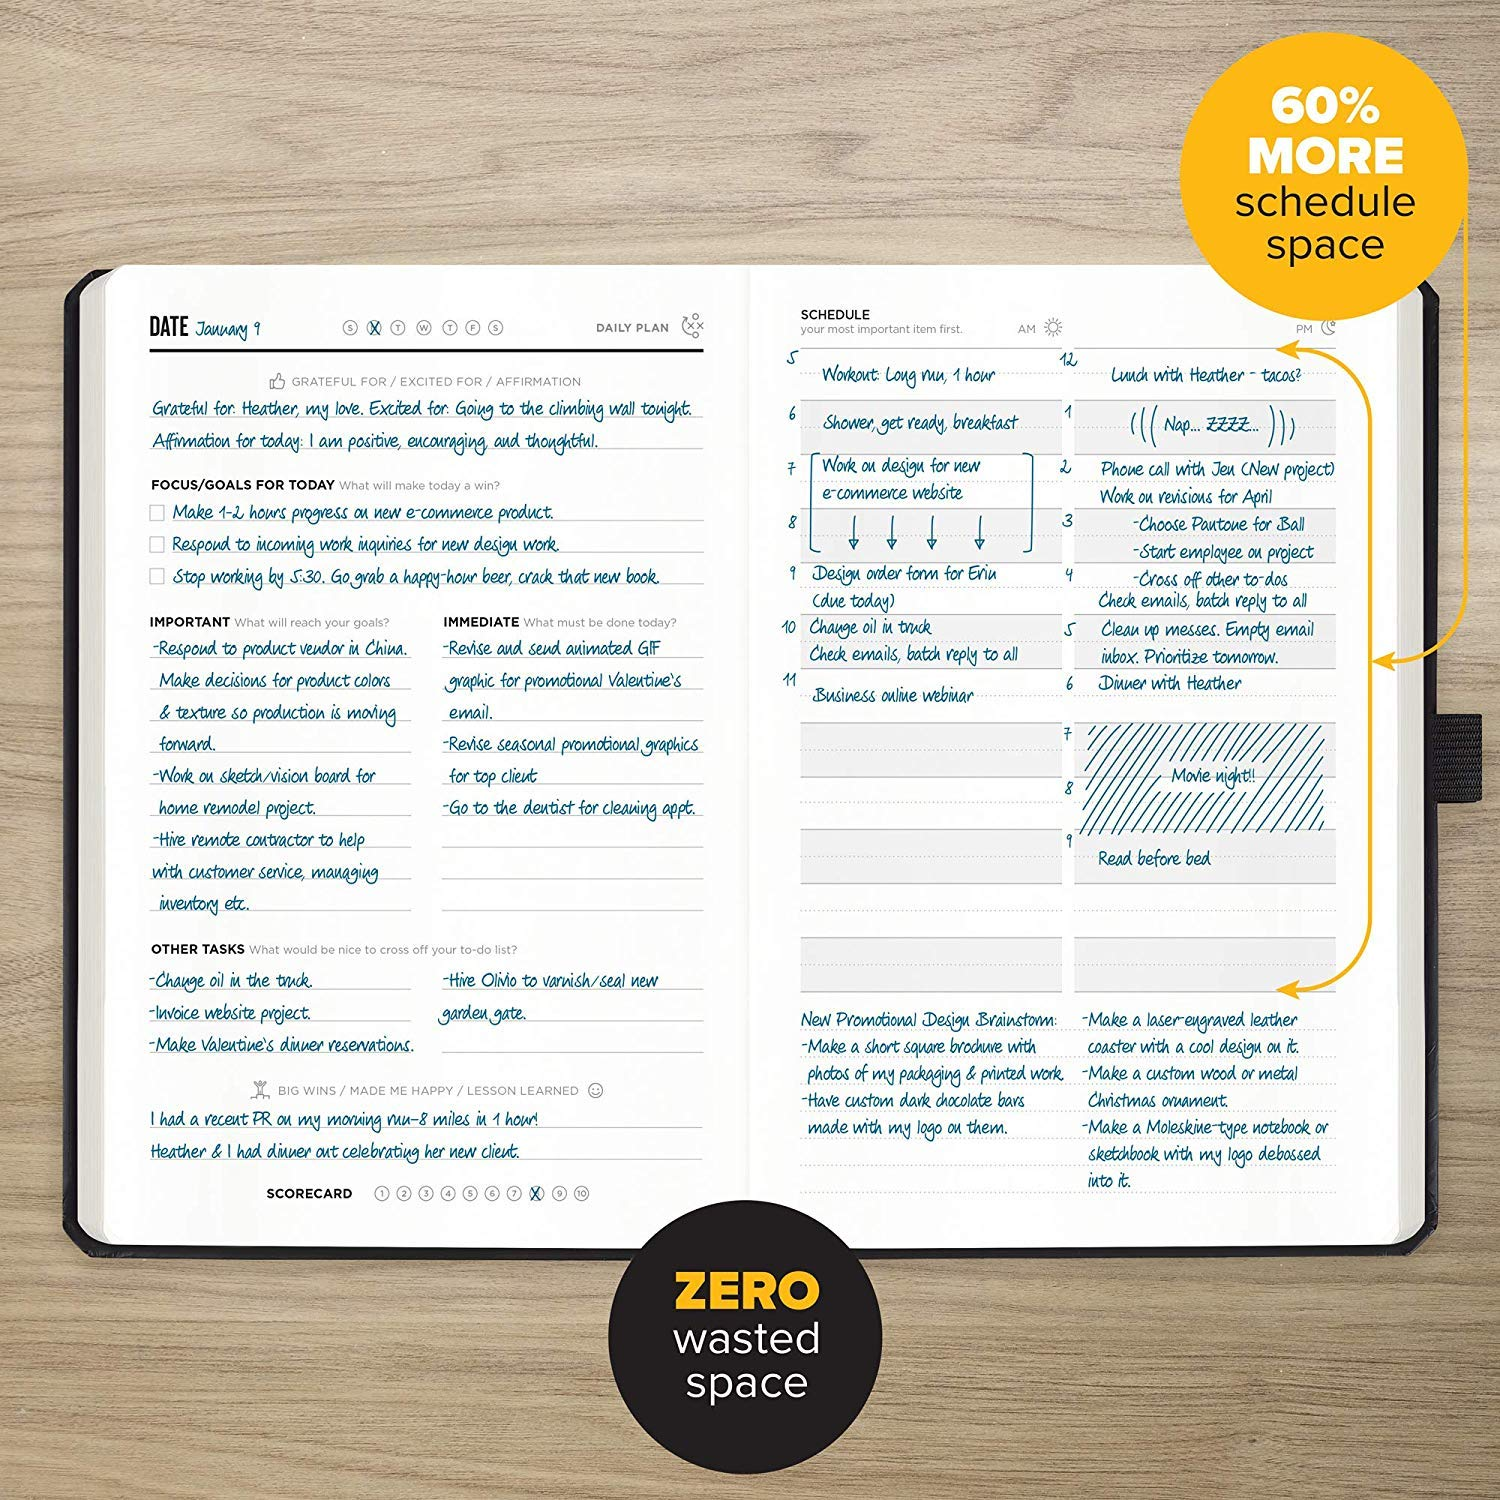 Undated Productivity Journal, 13 Week Planner for Goal Setting Plus 31 Daily Pages, 8.3